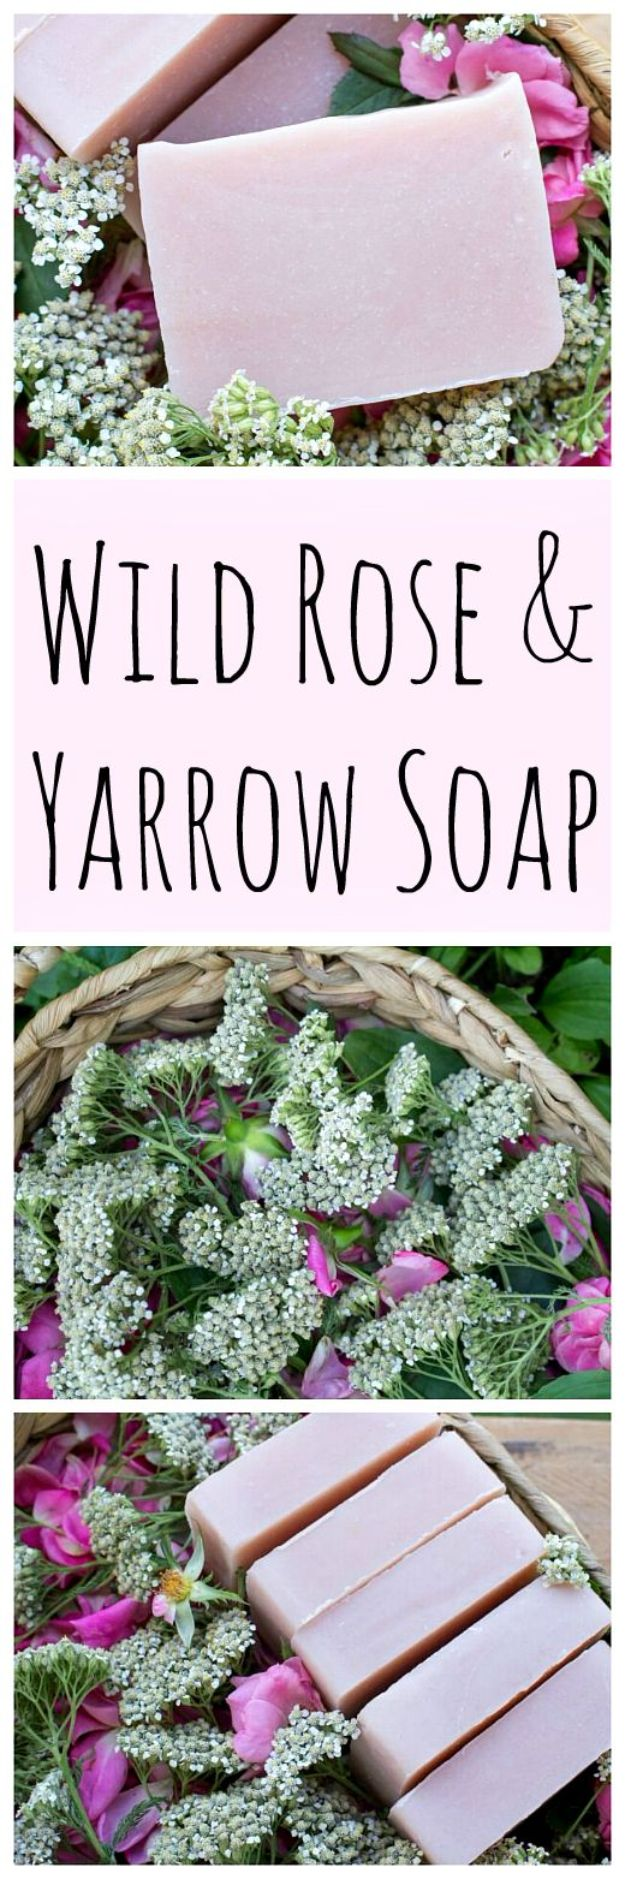 DIY Soap Recipes - Wild Rose And Yarrow Soap - Melt and Pour, Homemade Recipe Without Lye - Natural Soap crafts for Kids - Shea Butter, Essential Oils, Easy Ides With 3 Ingredients - soap recipes with step by step tutorials #soap #diygifts